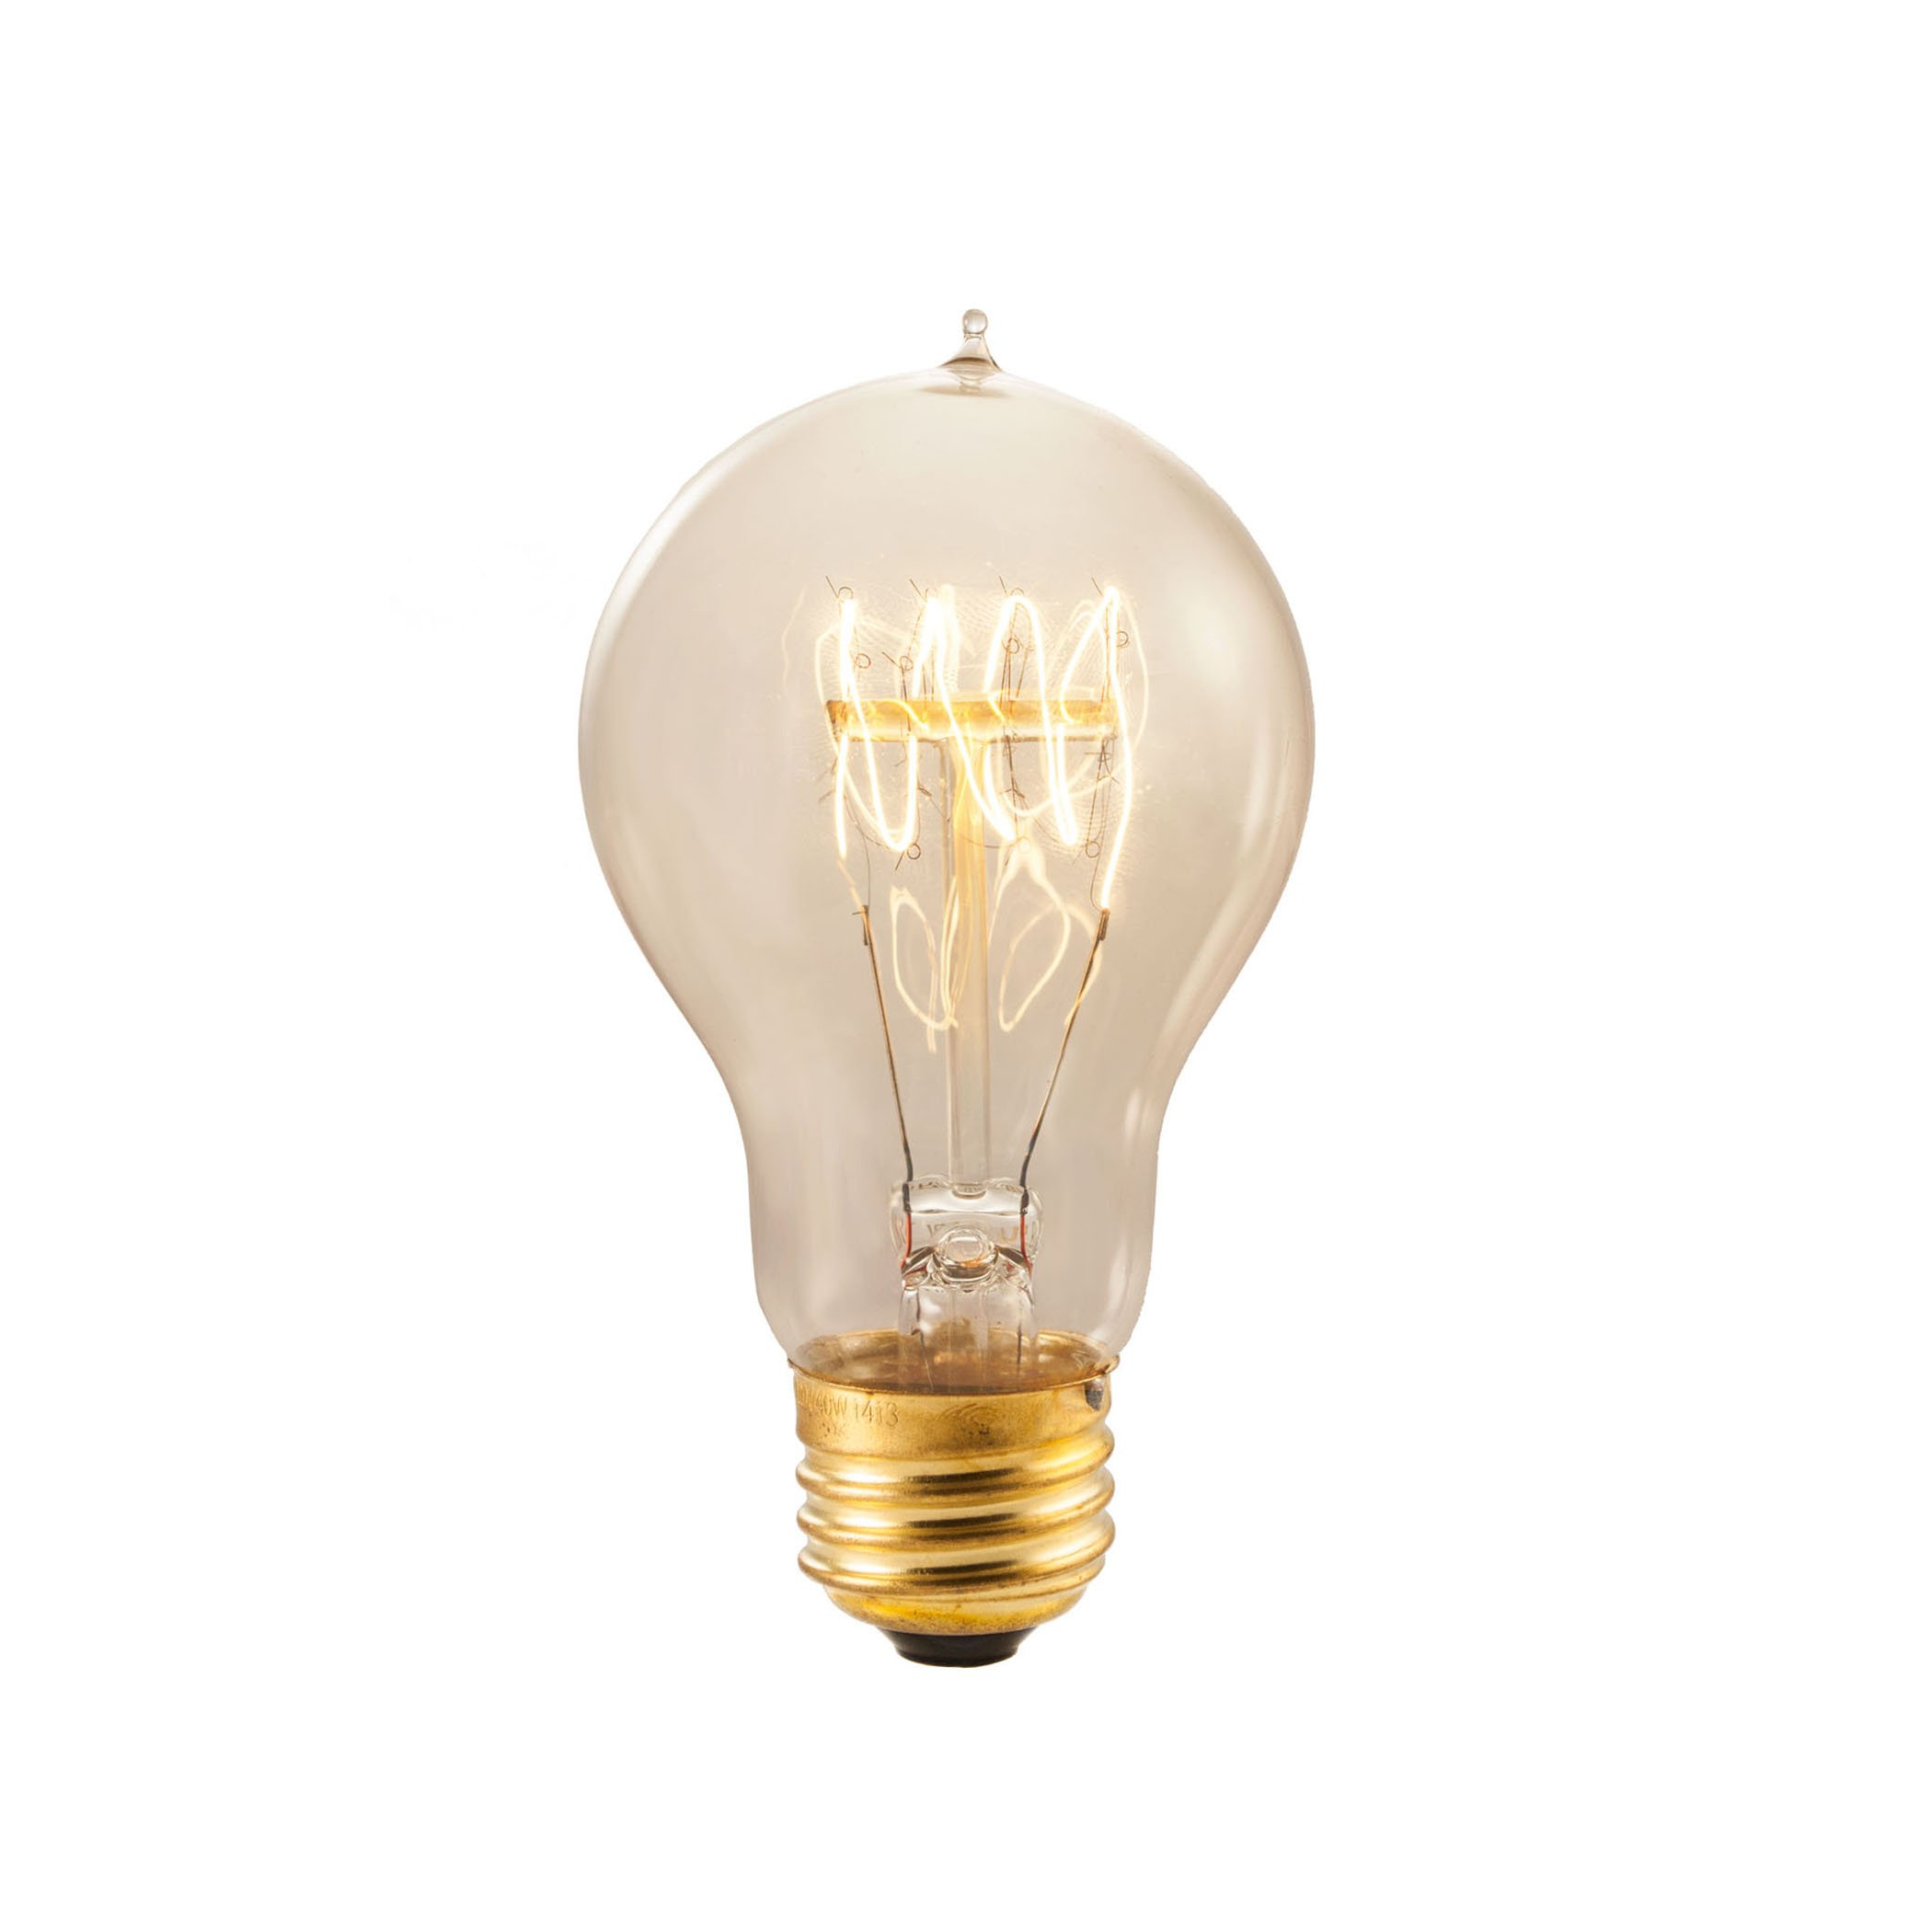 Bulbrite NOS25-VICTOR 25-Watt Nostalgic Incandescent Edison Quad Loop A19, Medium Base, Antique [12 Pack]